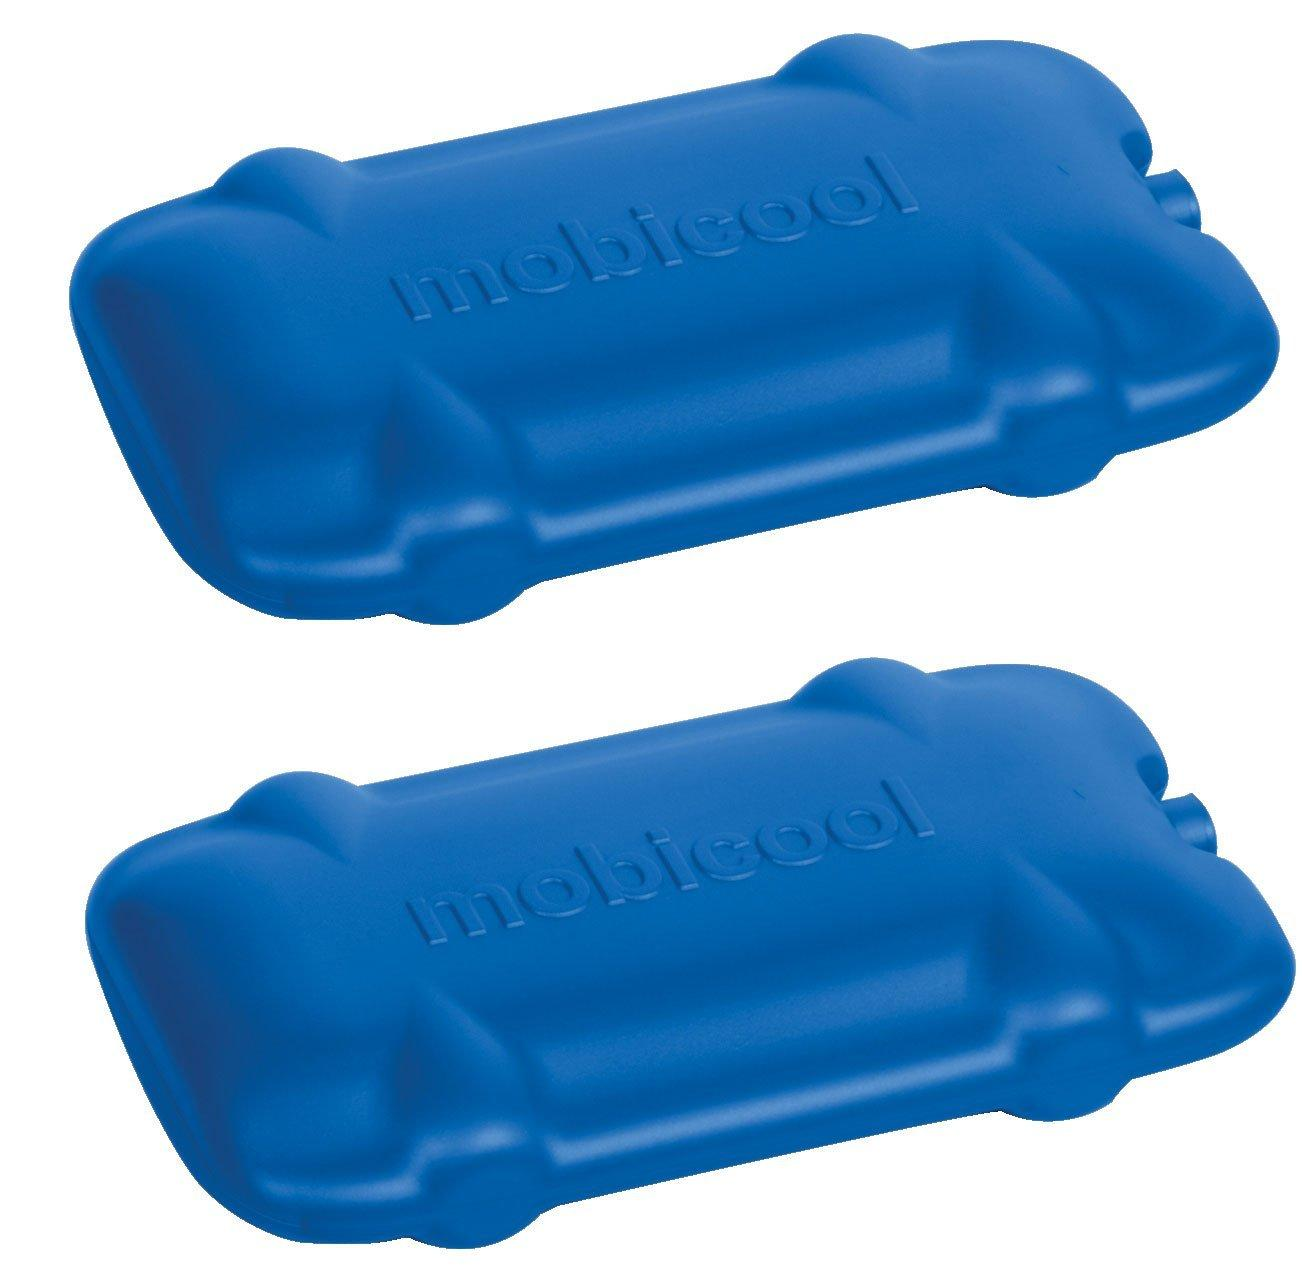 Аккумулятор холода Mobicool Ice Pack, 400 г, 2 шт environmental information in the context of nuclear energy development